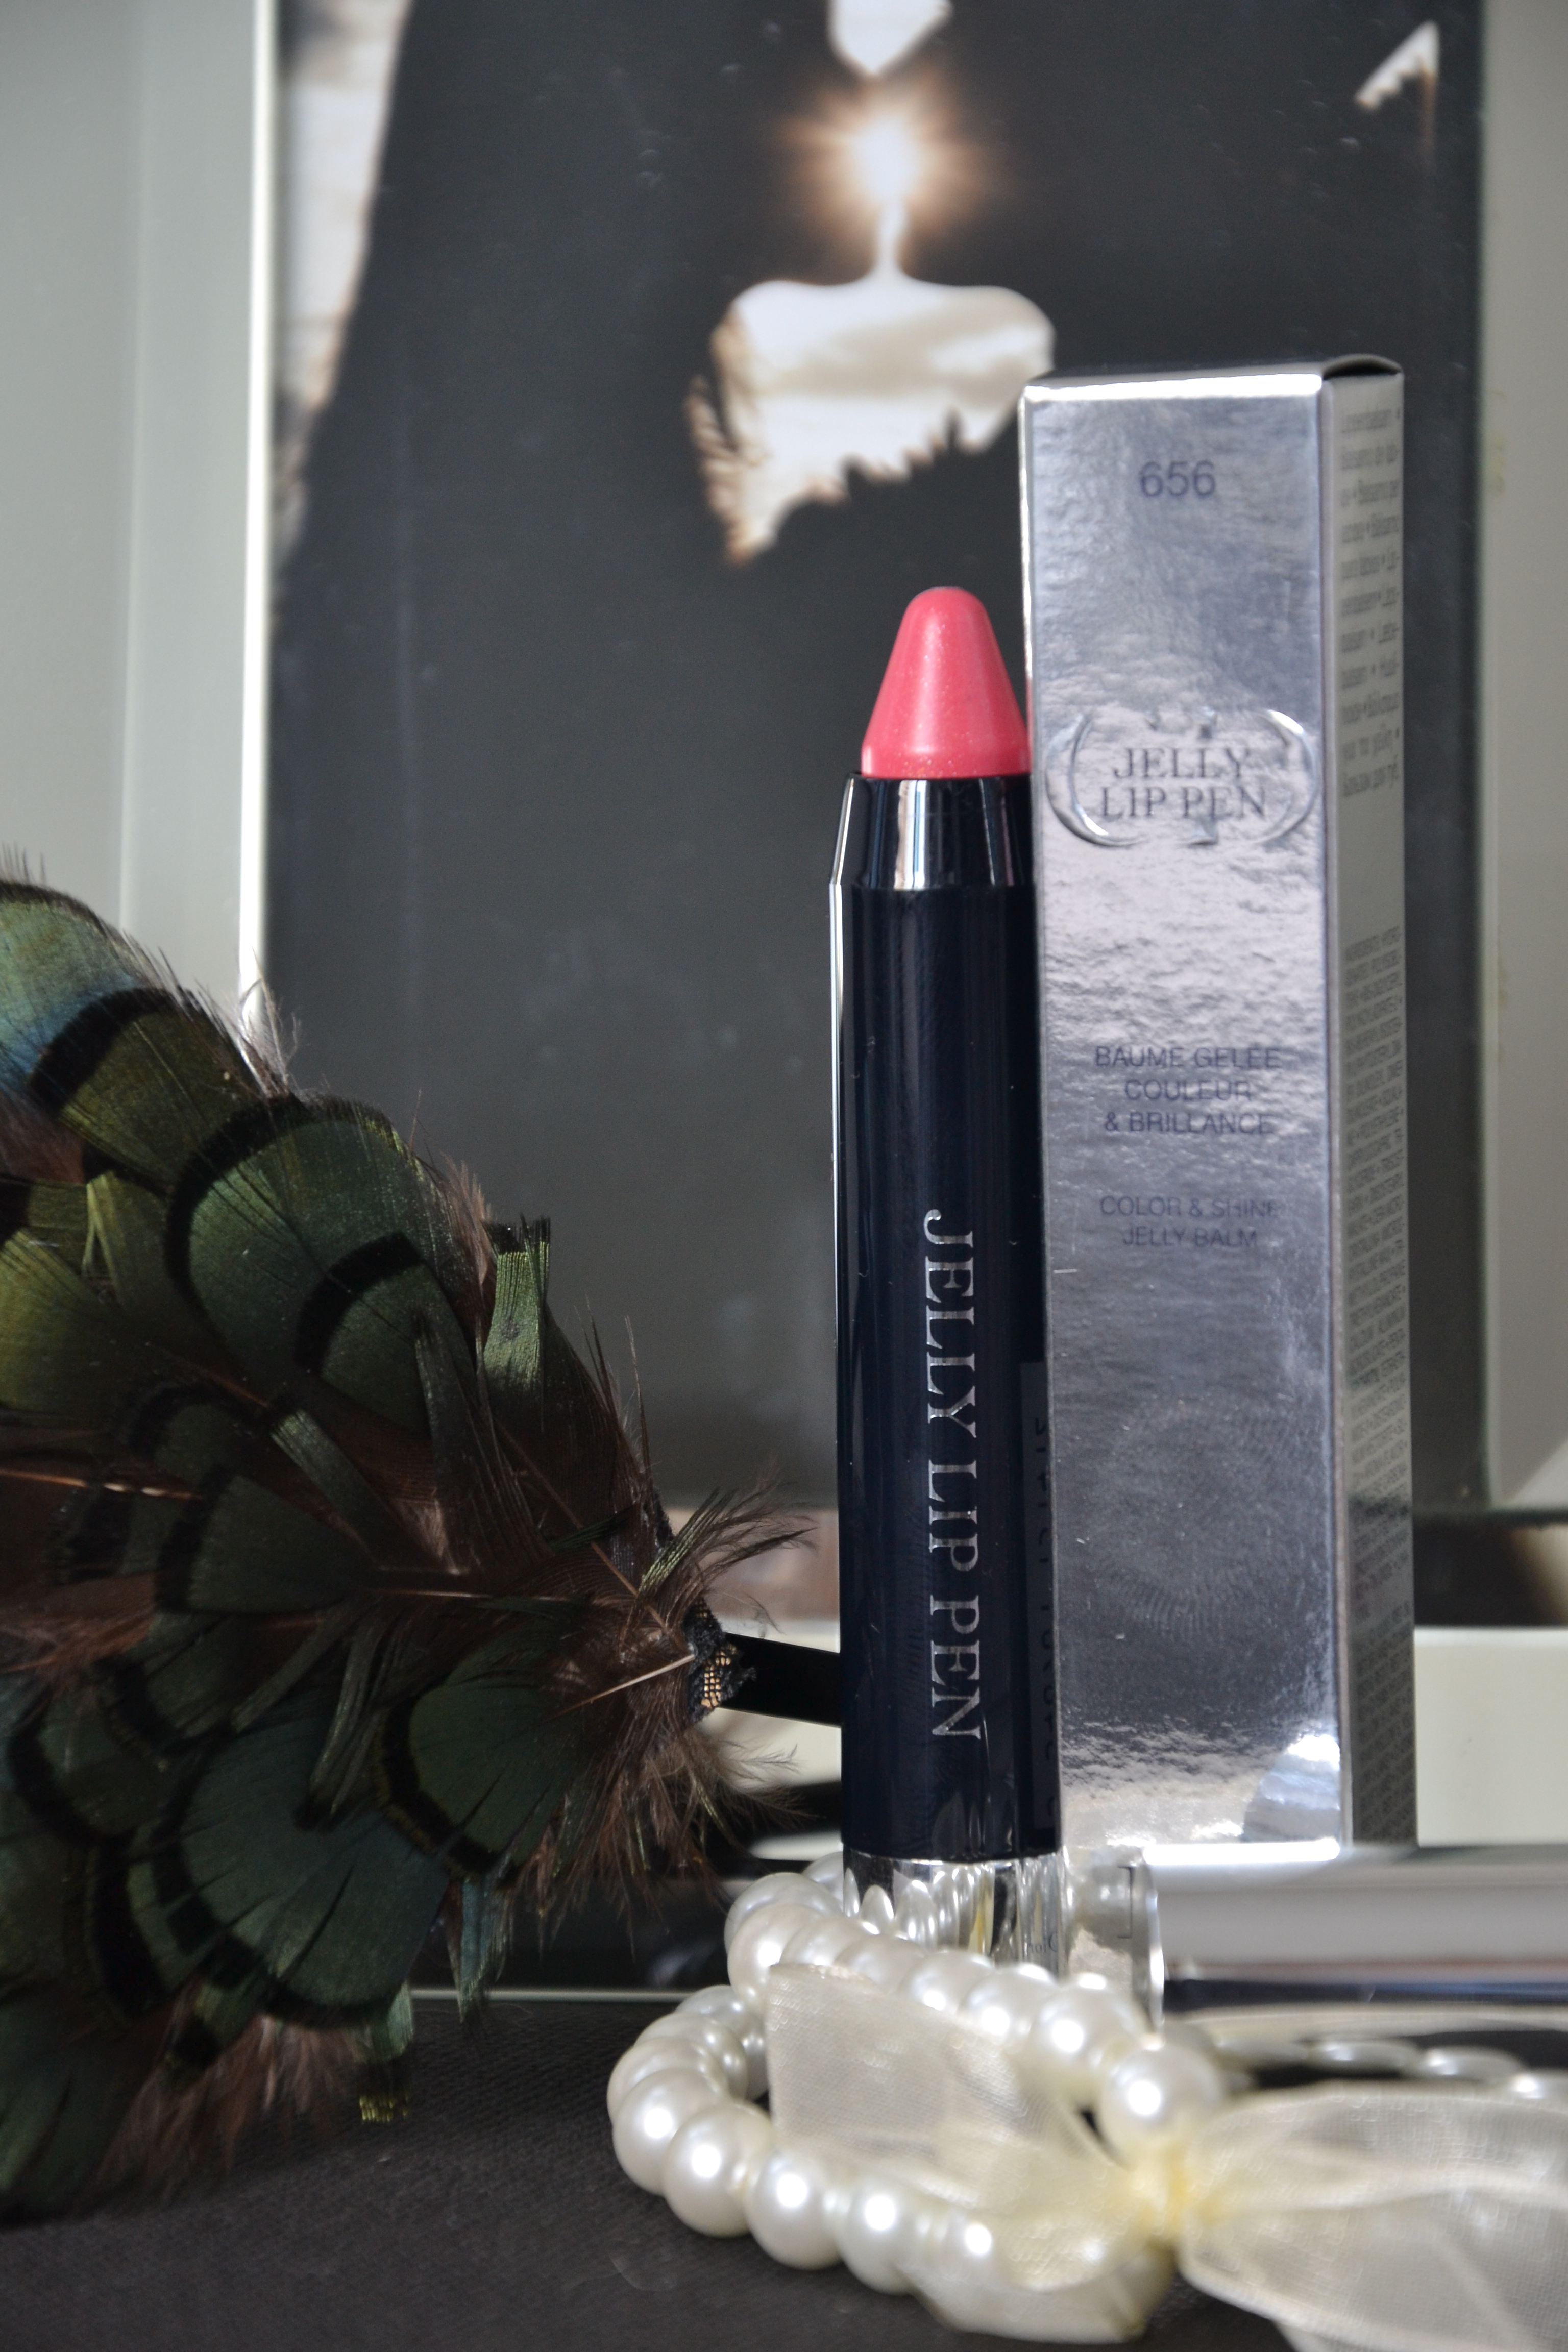 dior color and shine jelly balm